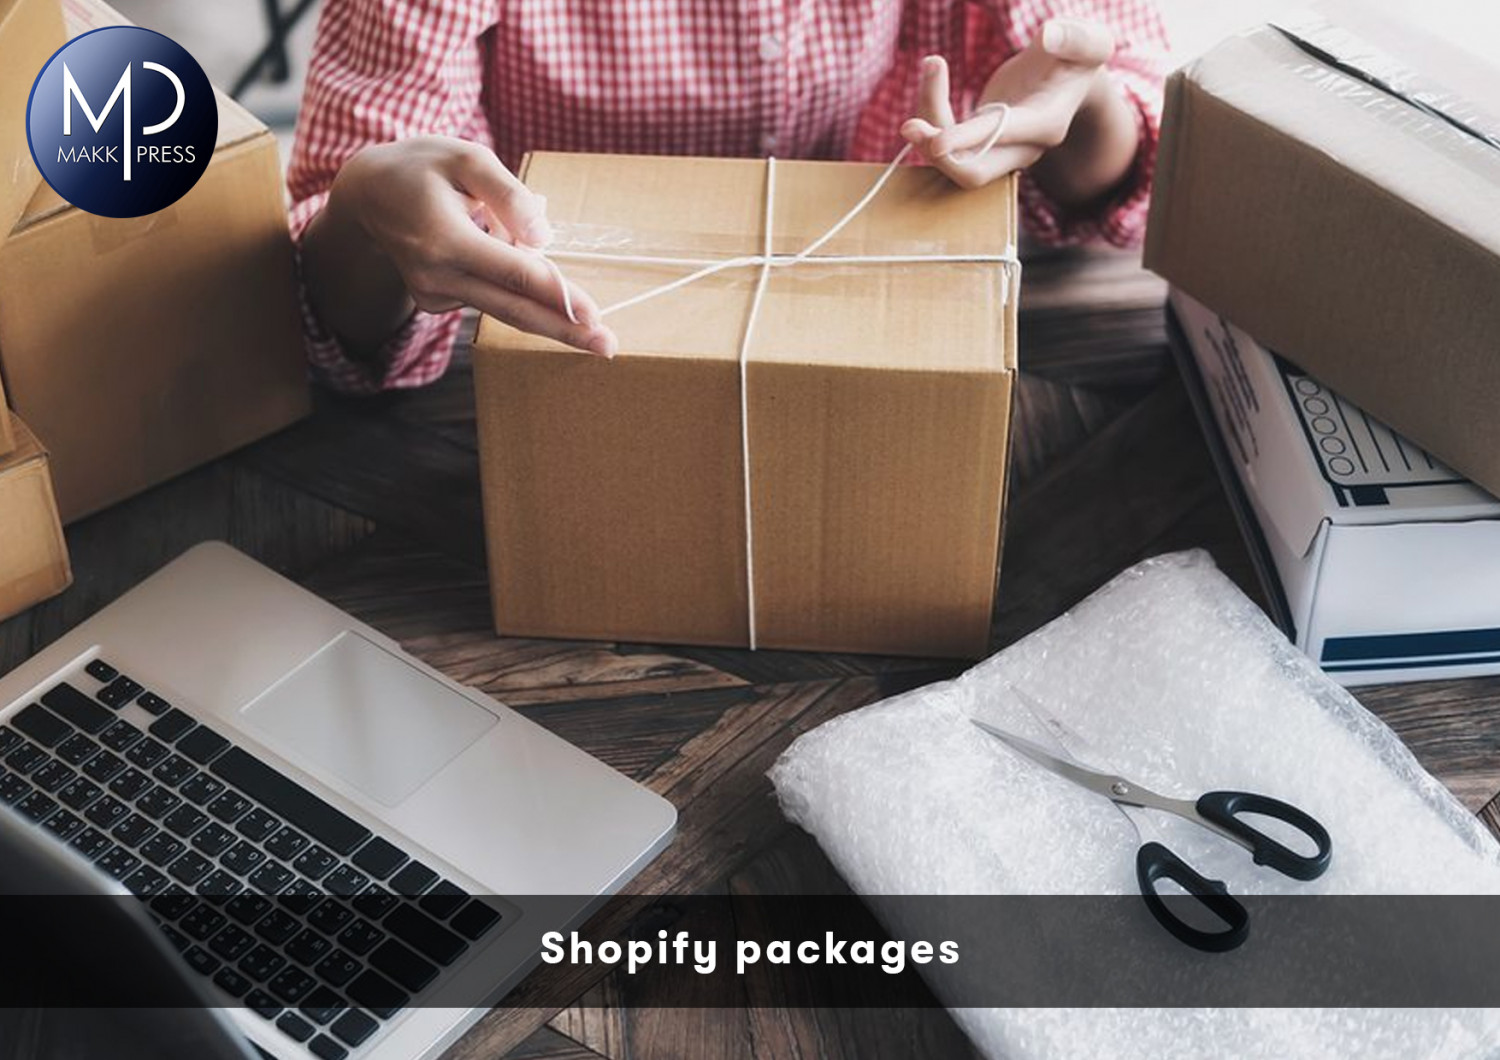 Amazing Shopify Packages in India Infographic